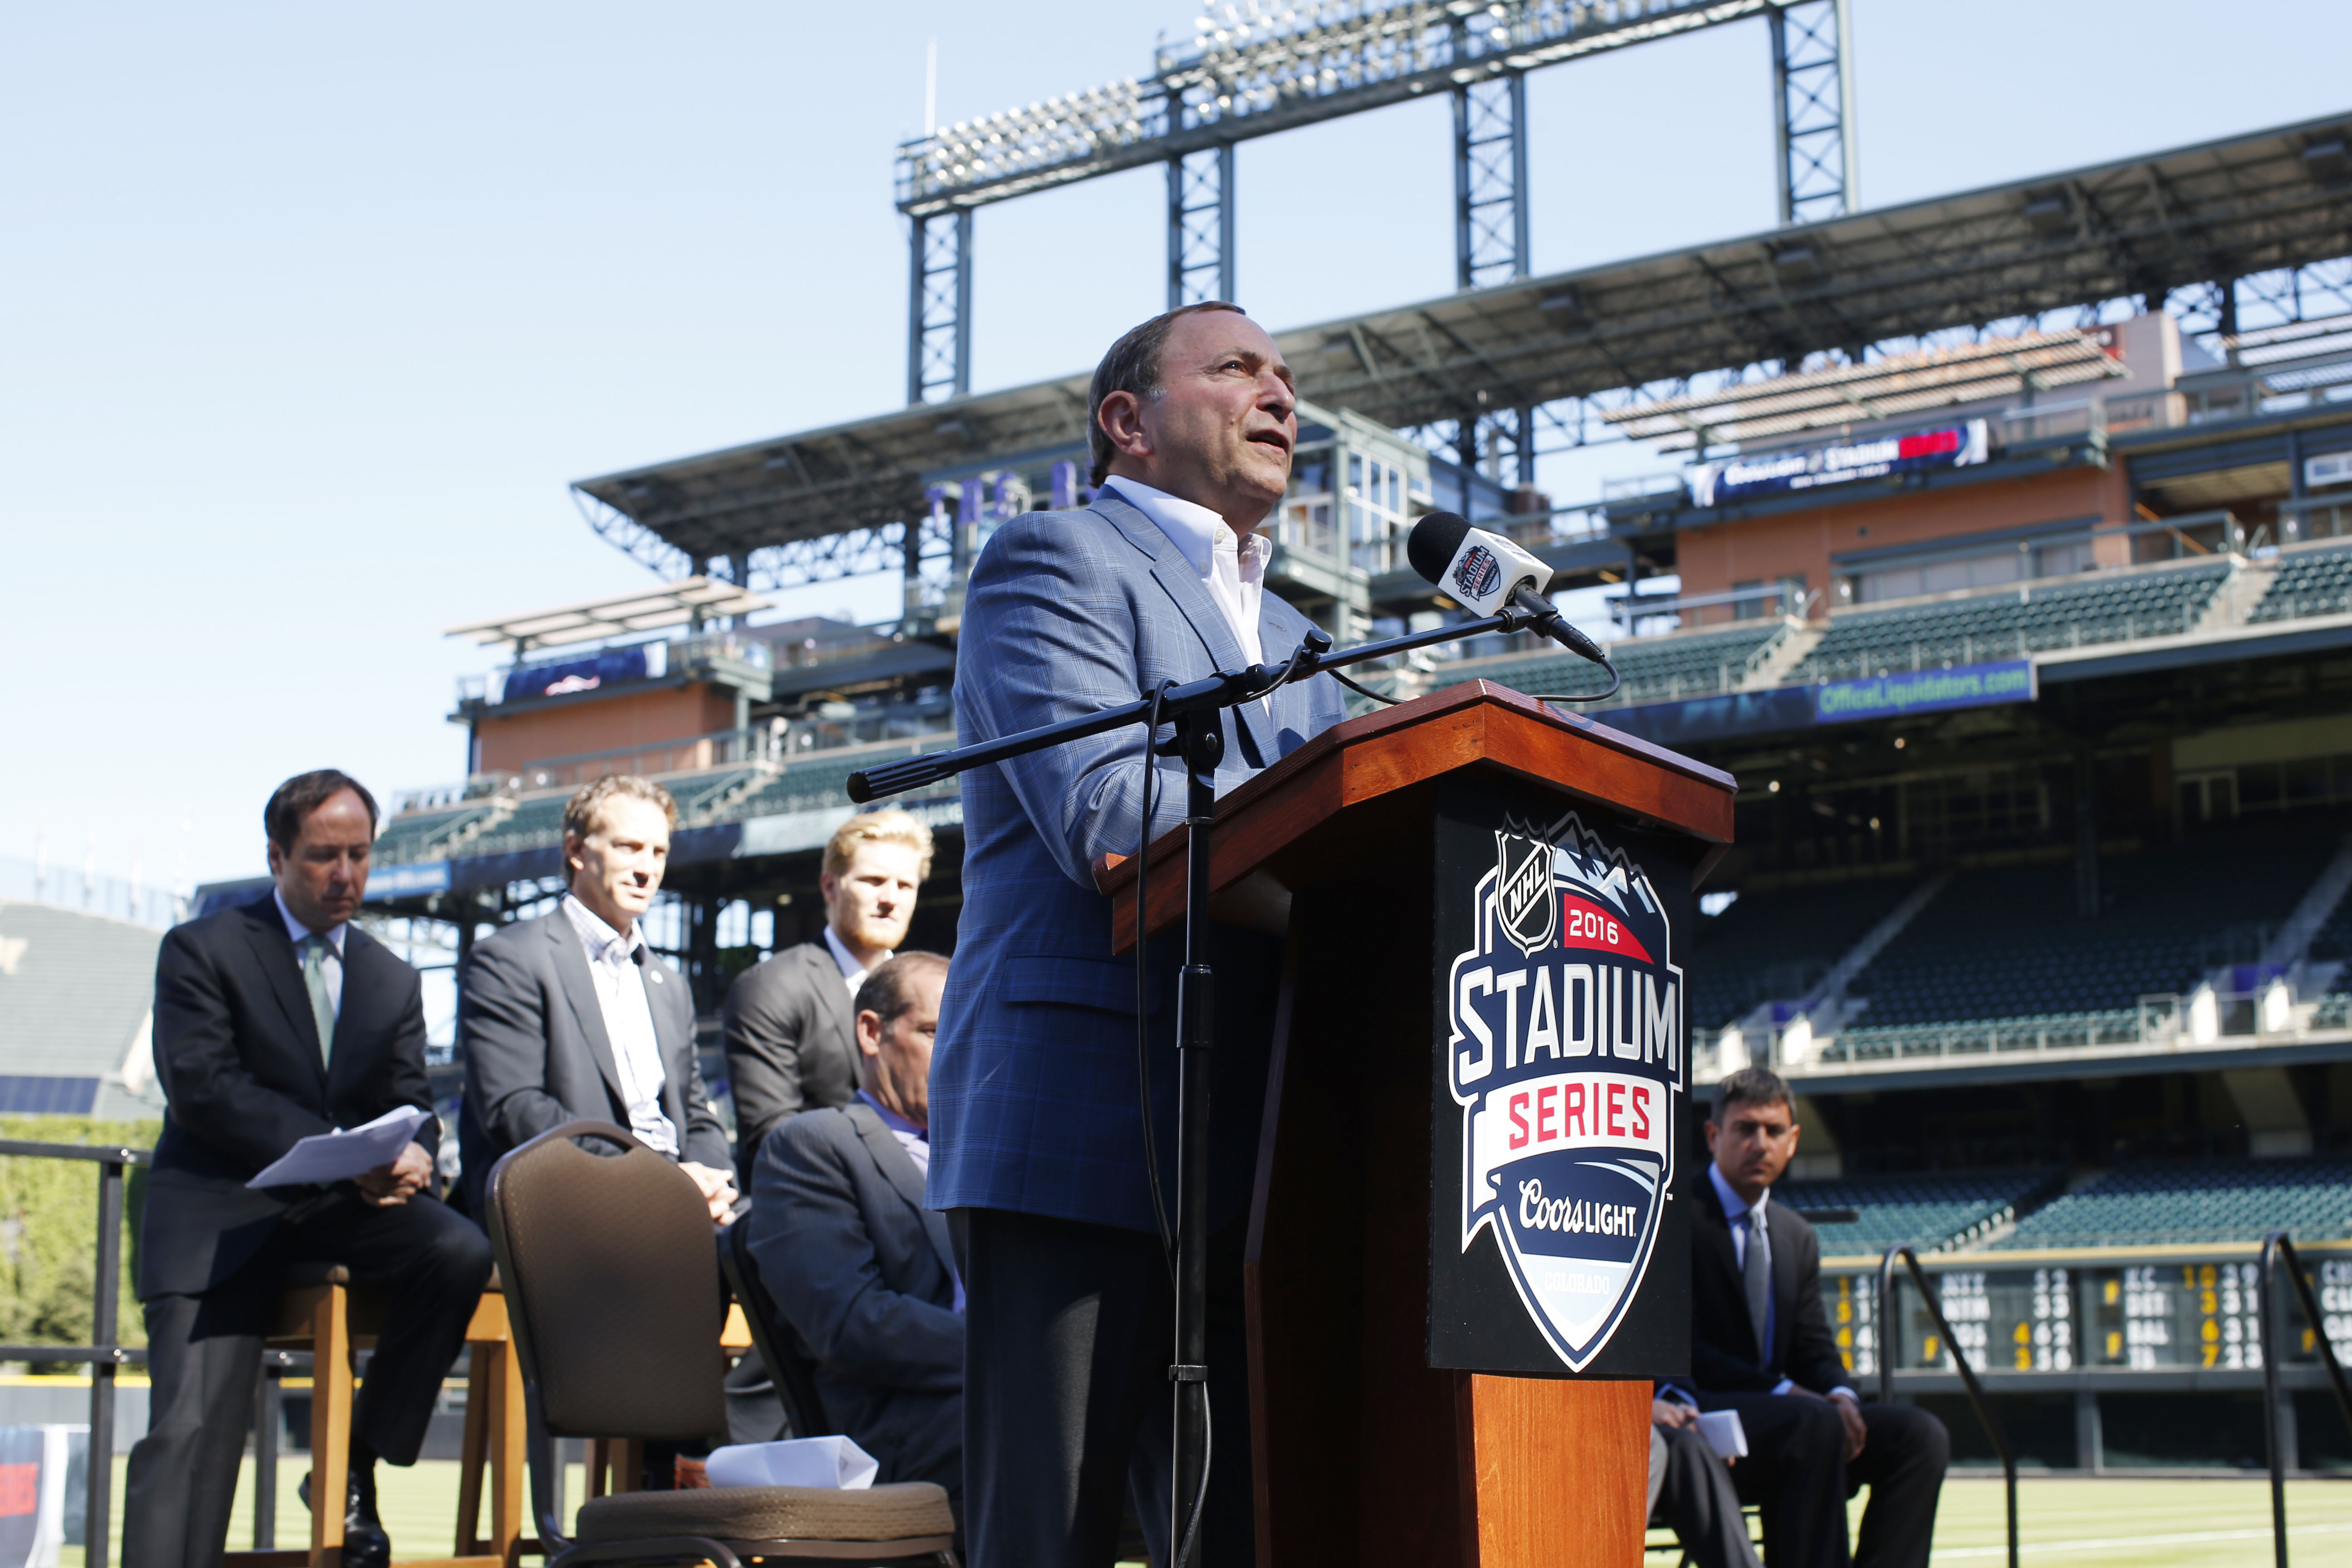 National Hockey League Commissioner Gary Bettman speaks during a news conference Monday, Sept. 21, 2015, in Denver to announce that Coors Field will host the 2016 NHL Stadium Series hockey game. The game between the Red Wings and Avalanche is set for Satu